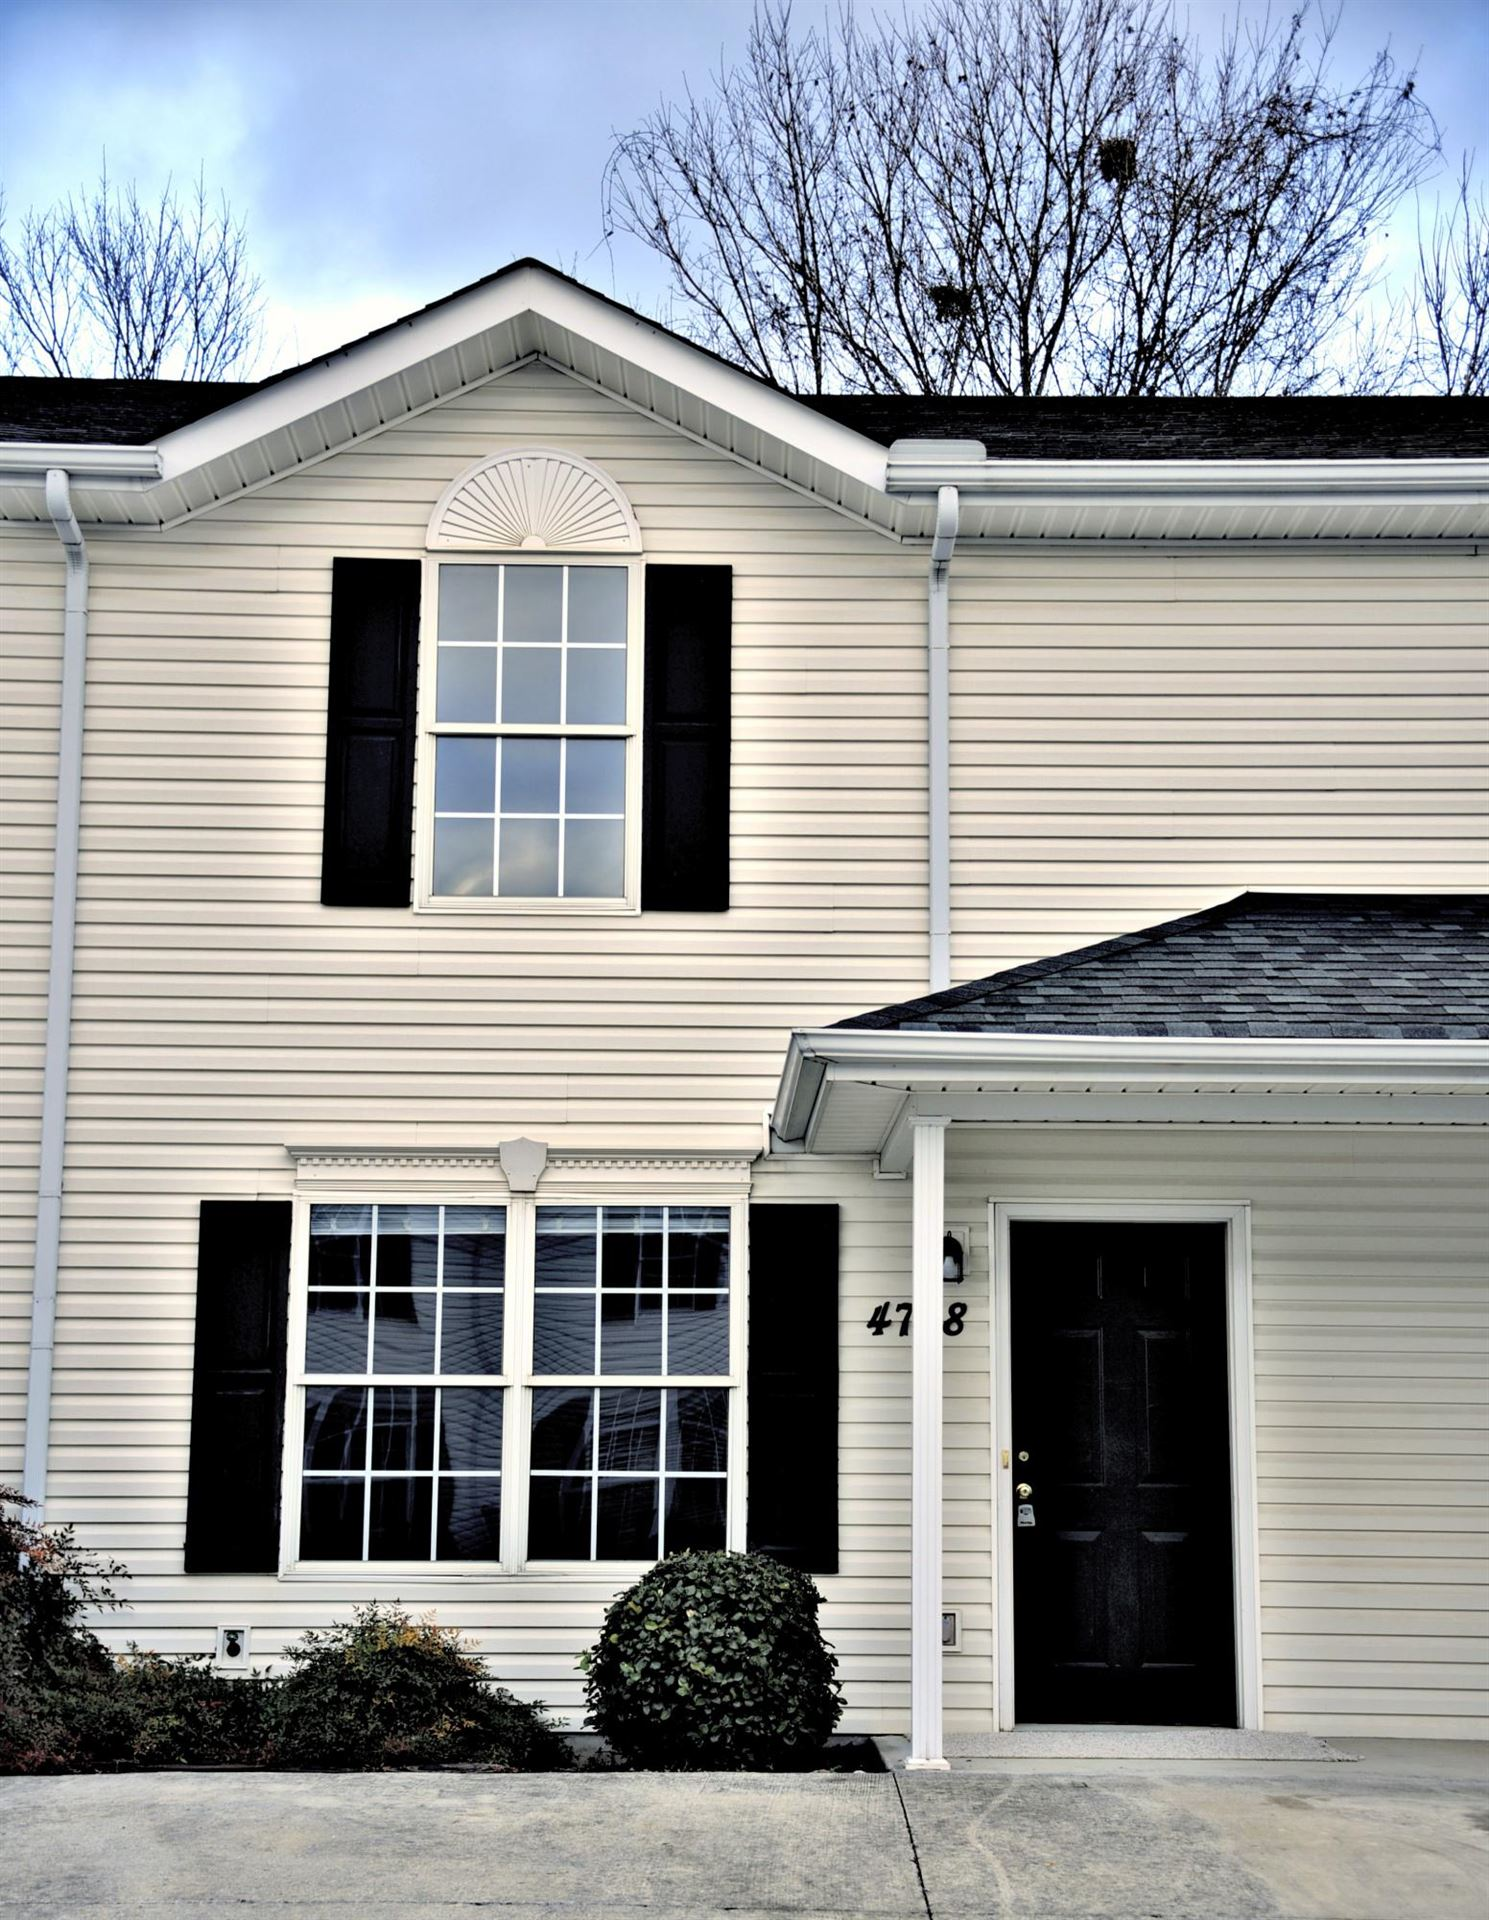 Photo of 4738 Scepter Way #79, Knoxville, TN 37912 (MLS # 1140238)